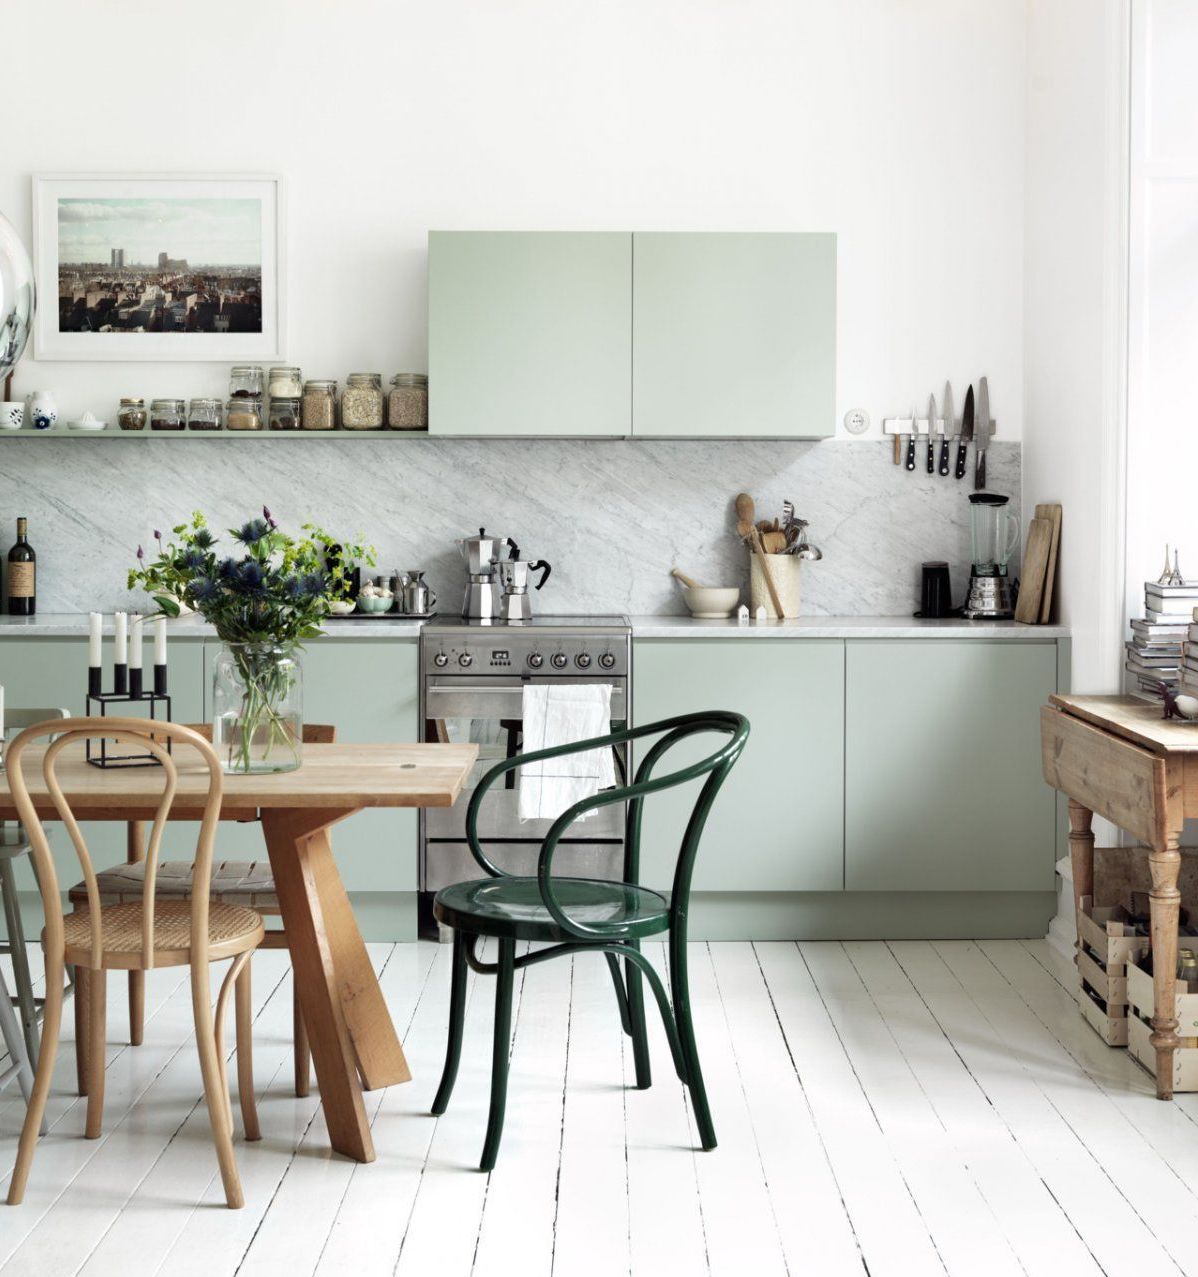 pale green kitchens - Emma Persson Lagerberg's pale green Swedish kitchen with white-painted floor - bloesem via Atticmag